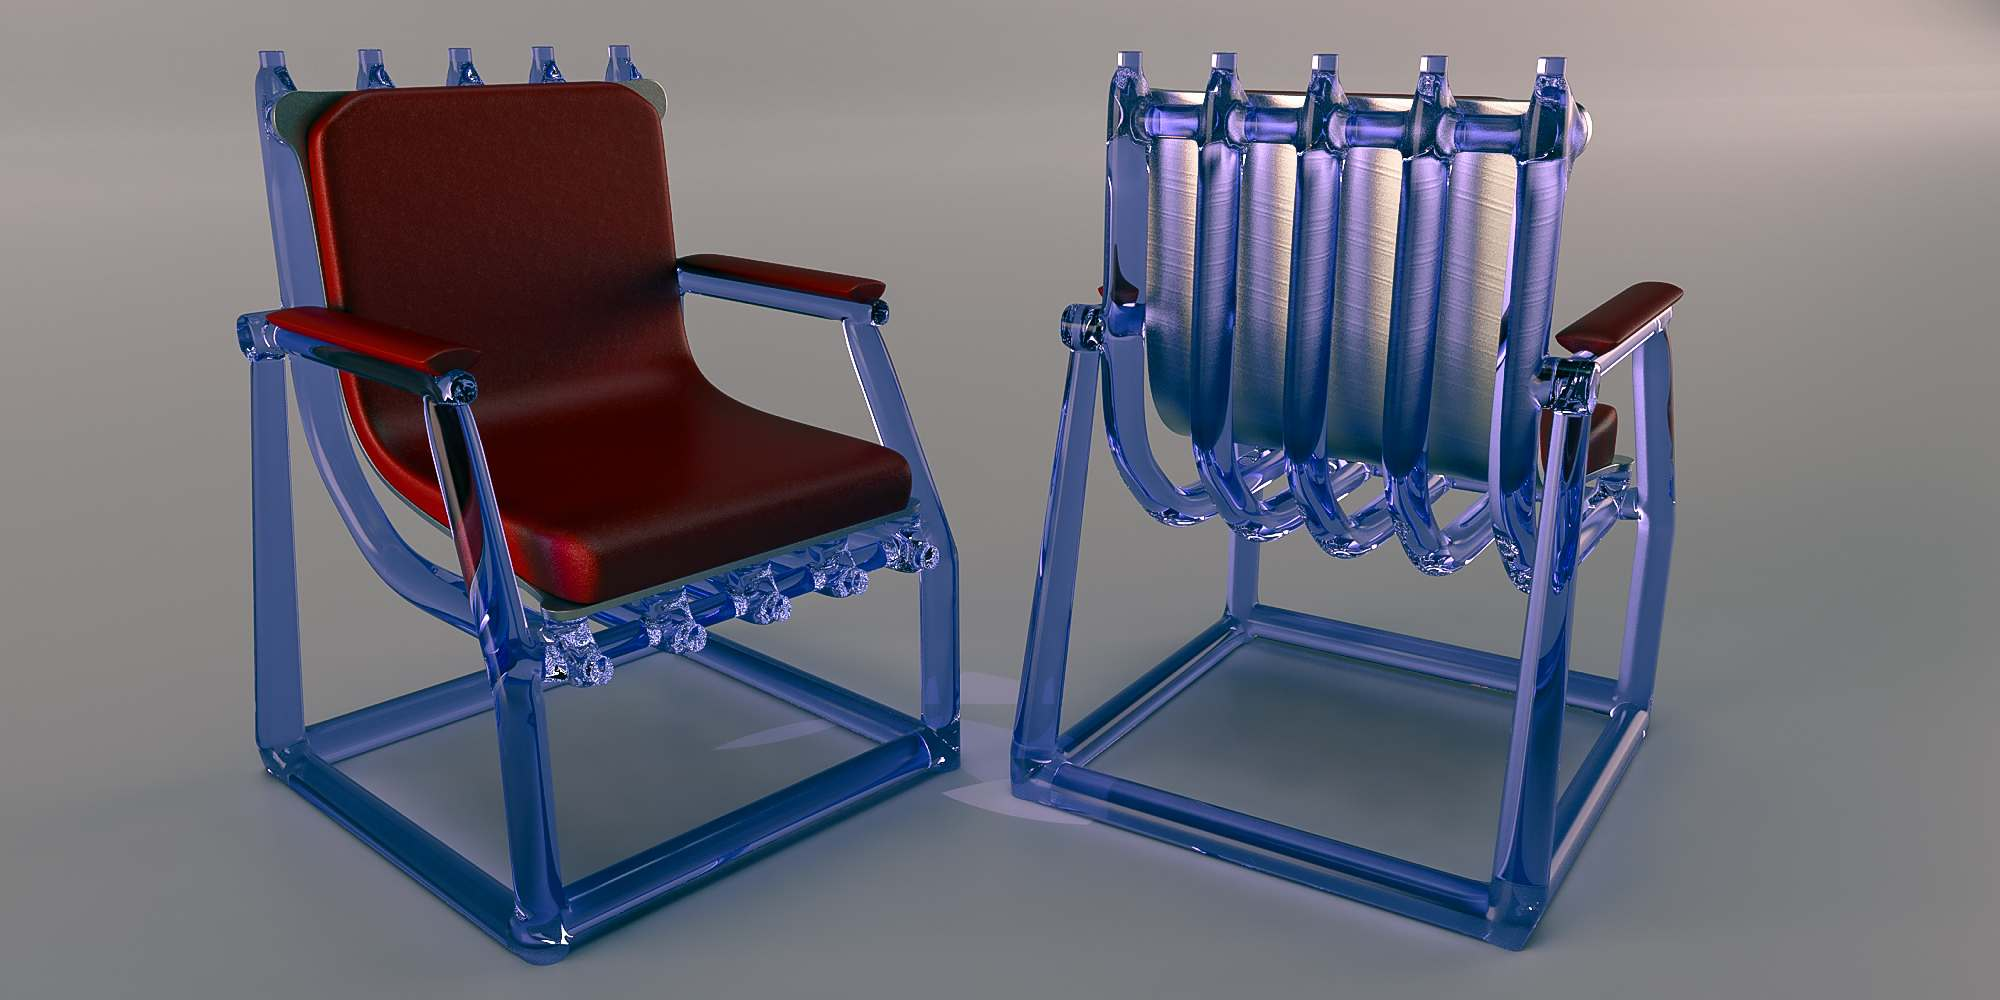 industrialdesign15 Industrial Design Modeled and Rendered in Modo by Mike Grauer